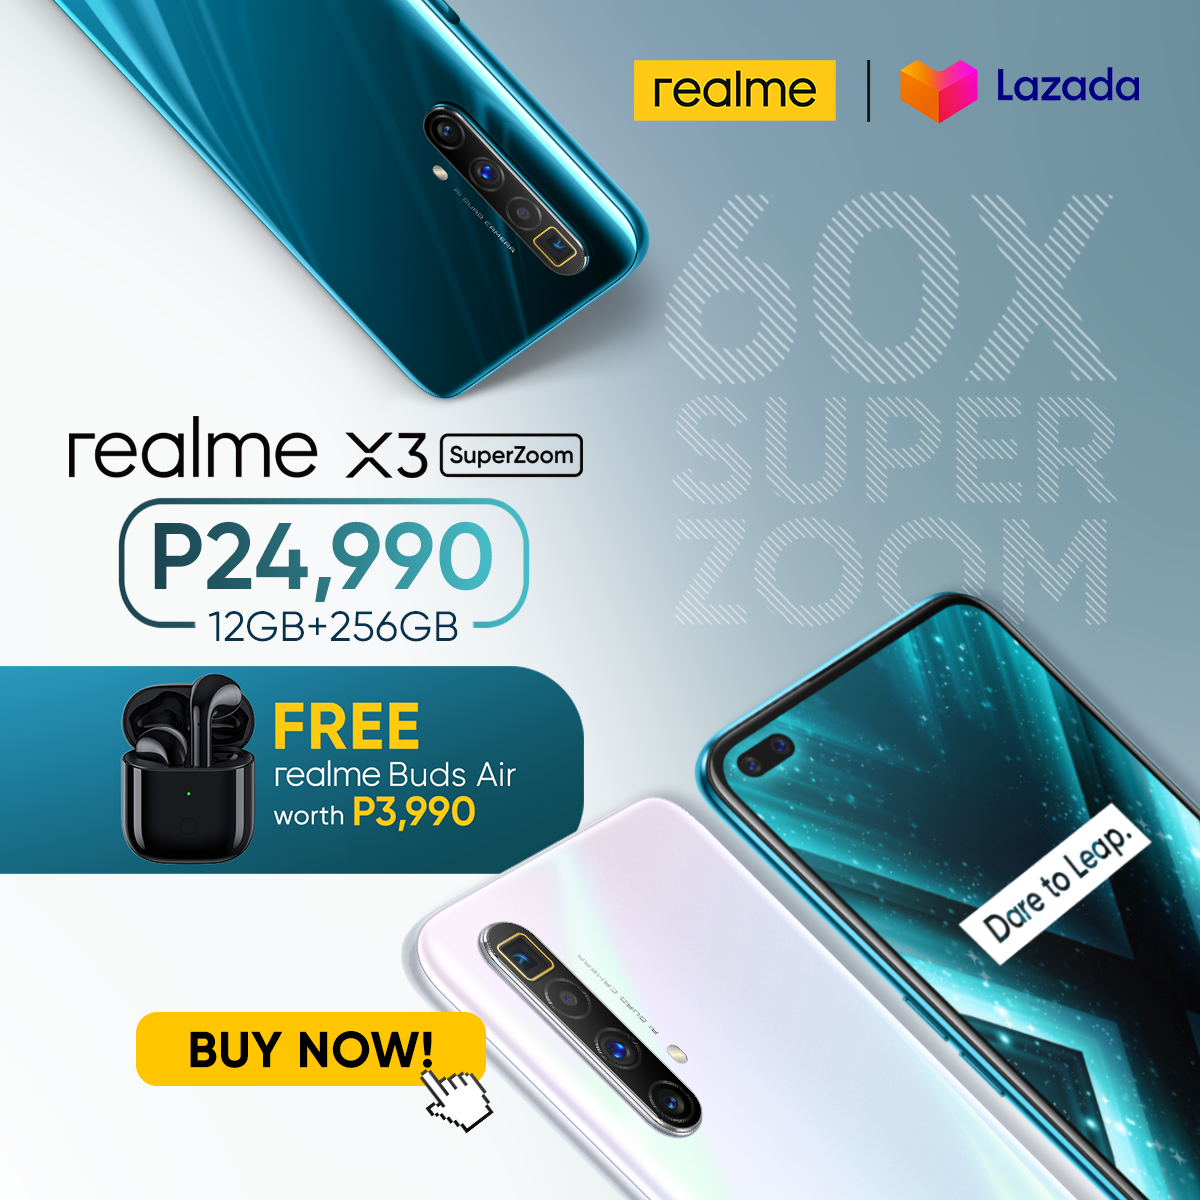 The First Flagship Realme X3 Superzoom Now Launched For Only Php24 990